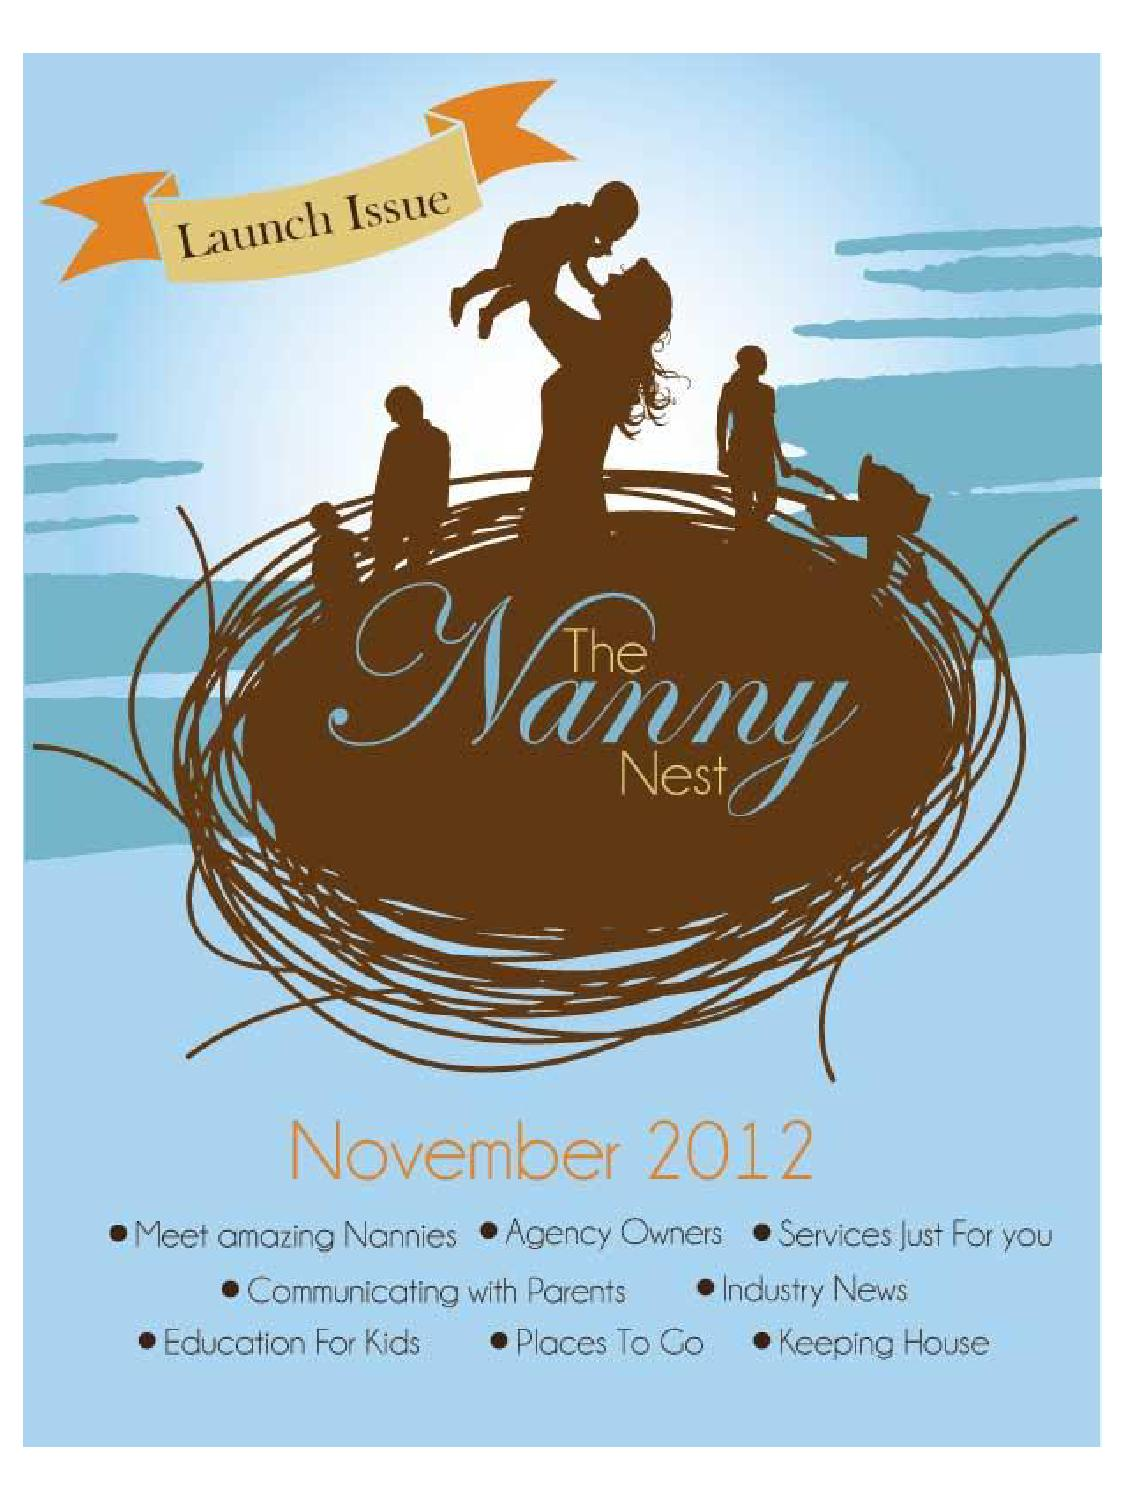 our first exceptional nanny philippa christian the nanny nest launch issue nov 2012 4 years ago kidzbizzdevelopment